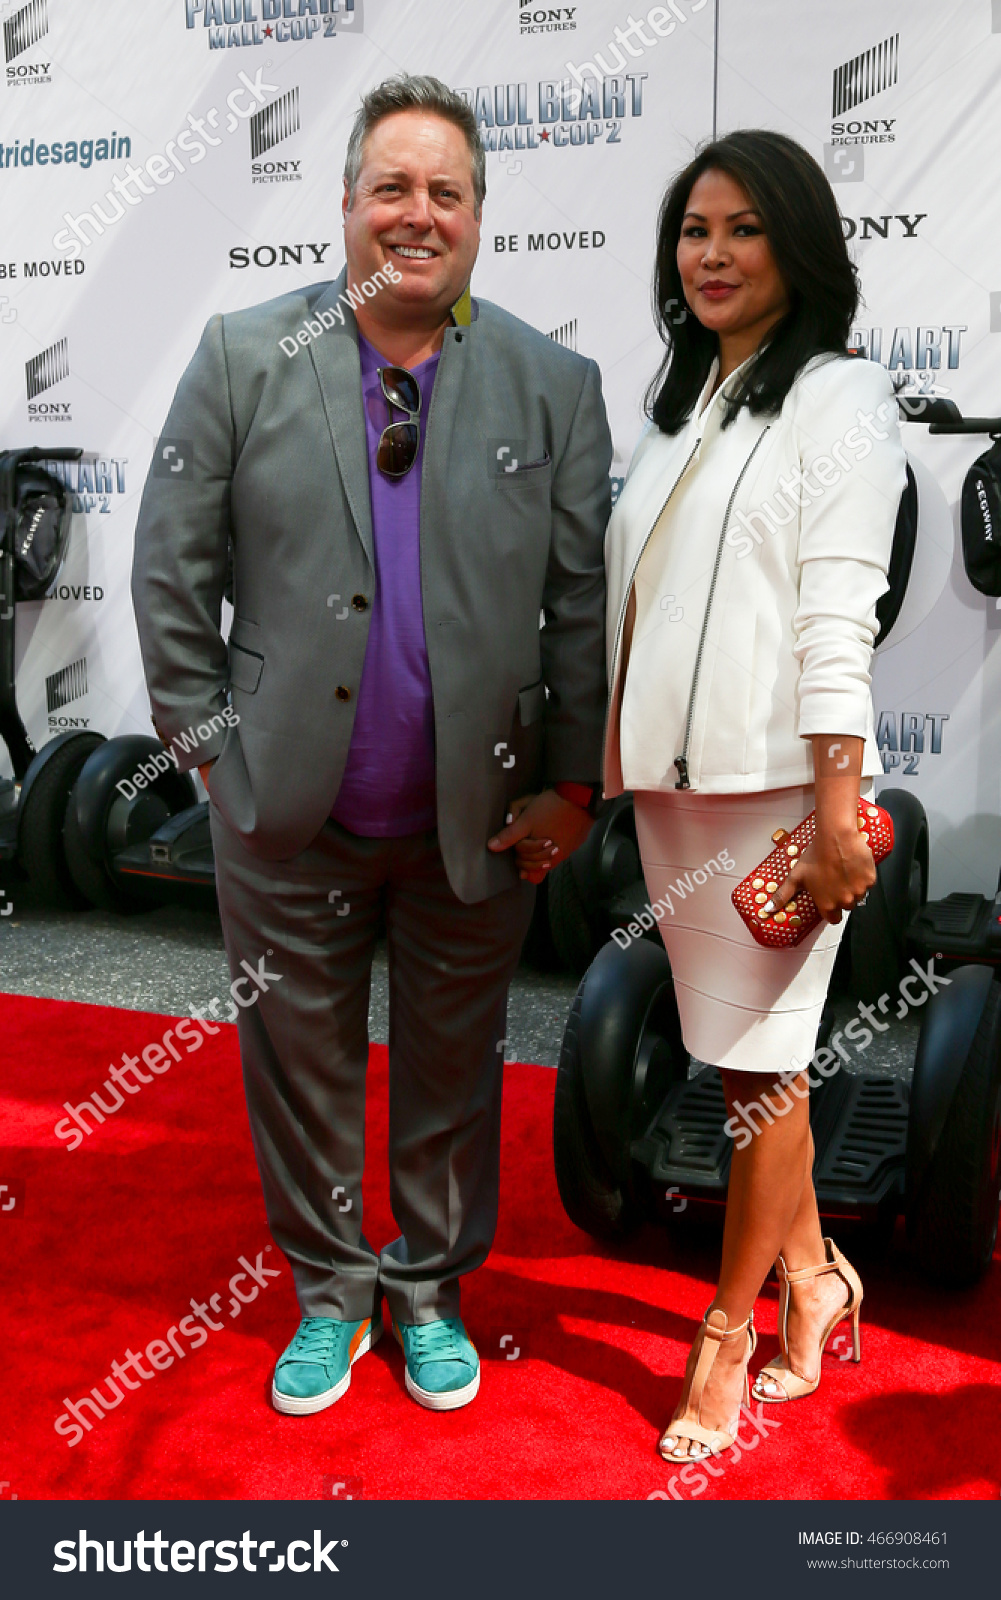 NEW YORK APR 11: Actor Gary Valentine (L) And Wife Jackyline Knipfing